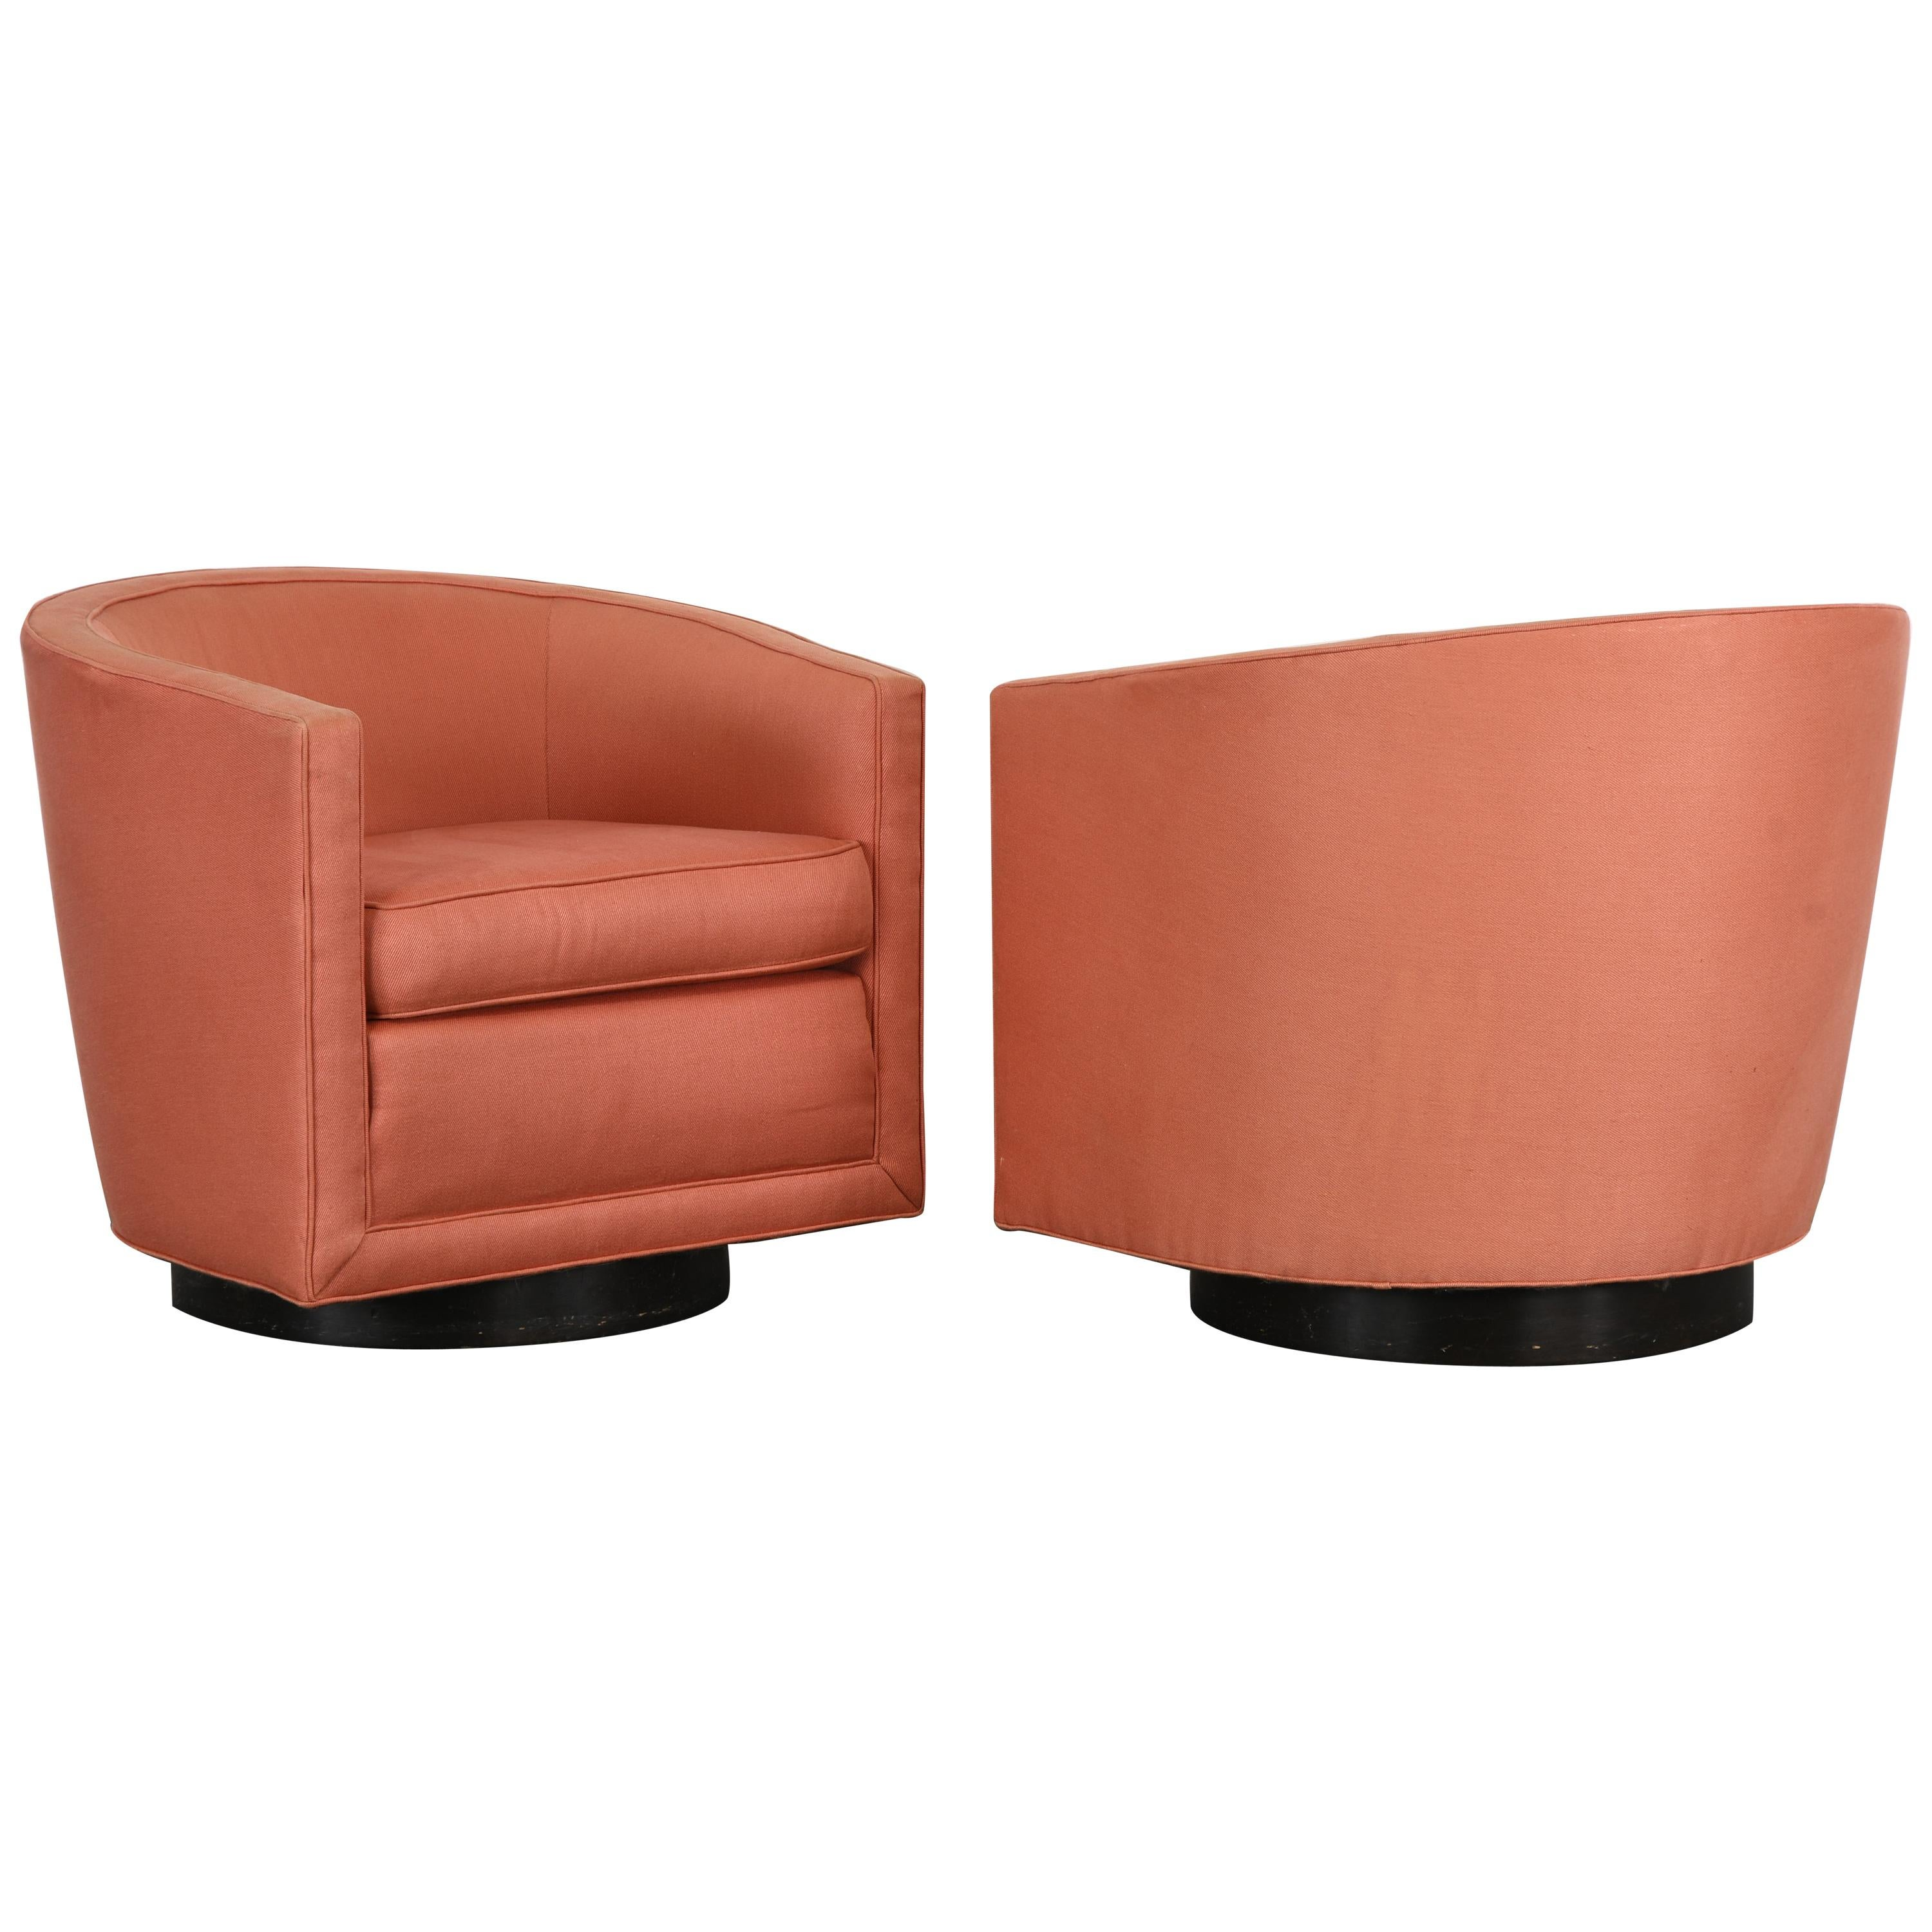 Pair of Swivel Chairs by Edward Wormley for Dunbar, 1970s